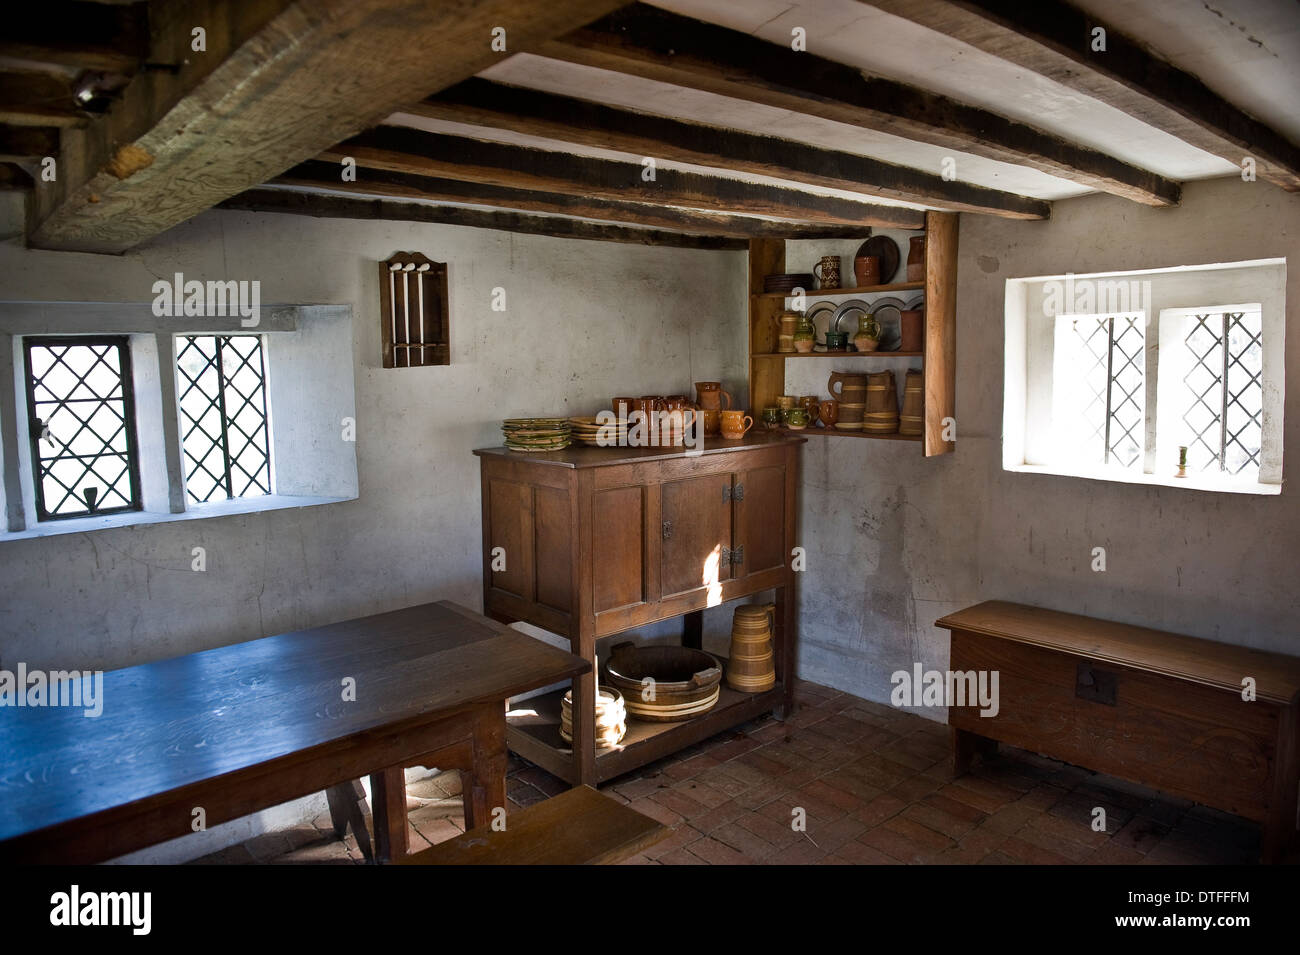 Interni domestici presso il Weald & Downland Open Air Museum a Singleton, vicino a Chichester, West Sussex, Regno Unito Immagini Stock